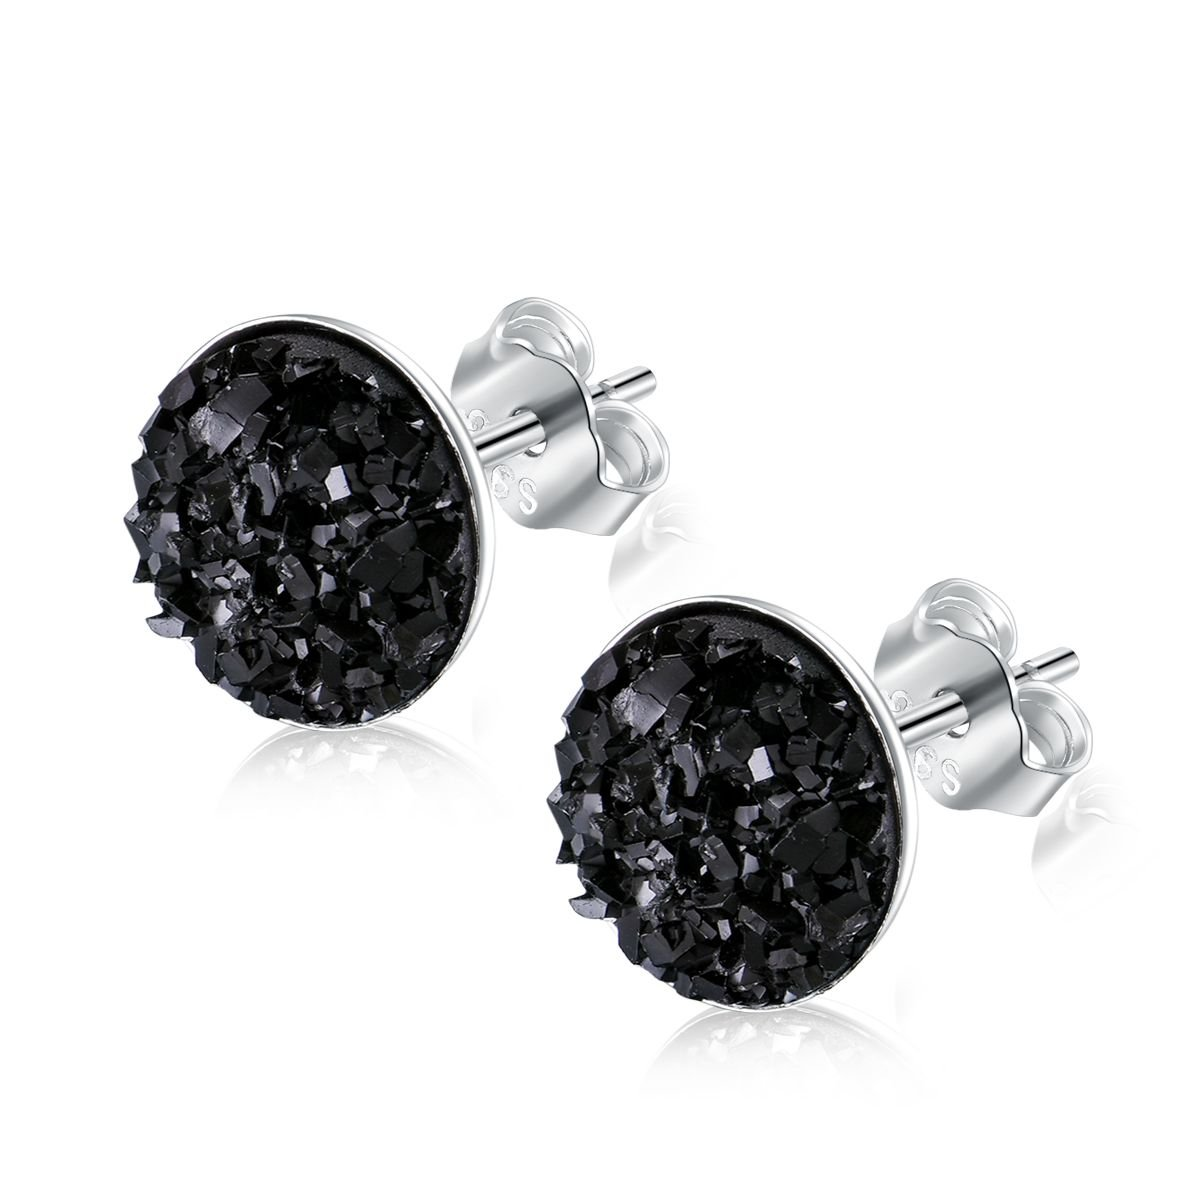 EVERU Sterling Silver Round Druzy Stud Earrings, 4 Colors Options, 8mm (Black)